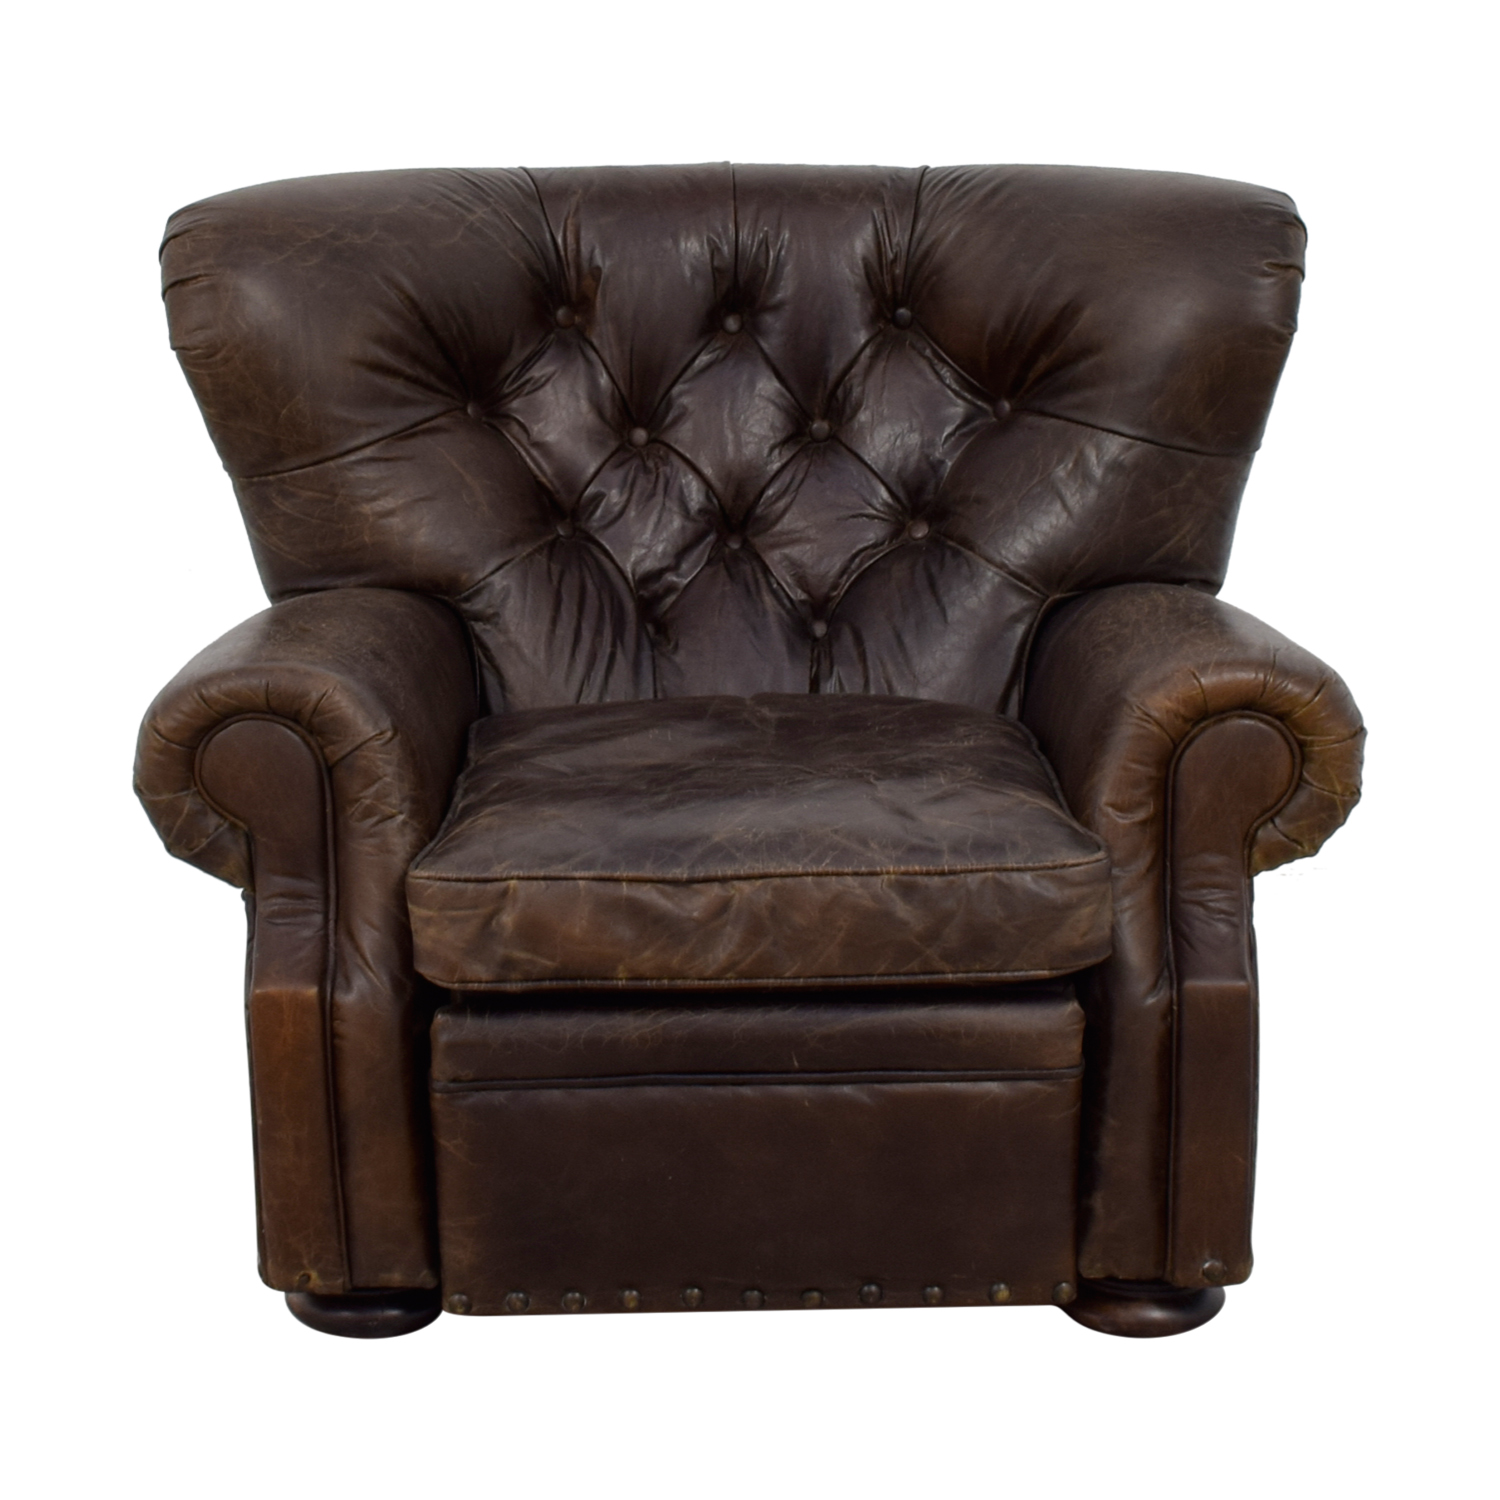 62 off restoration hardware restoration hardware churchill brown leather nailhead tufted recliner chairs